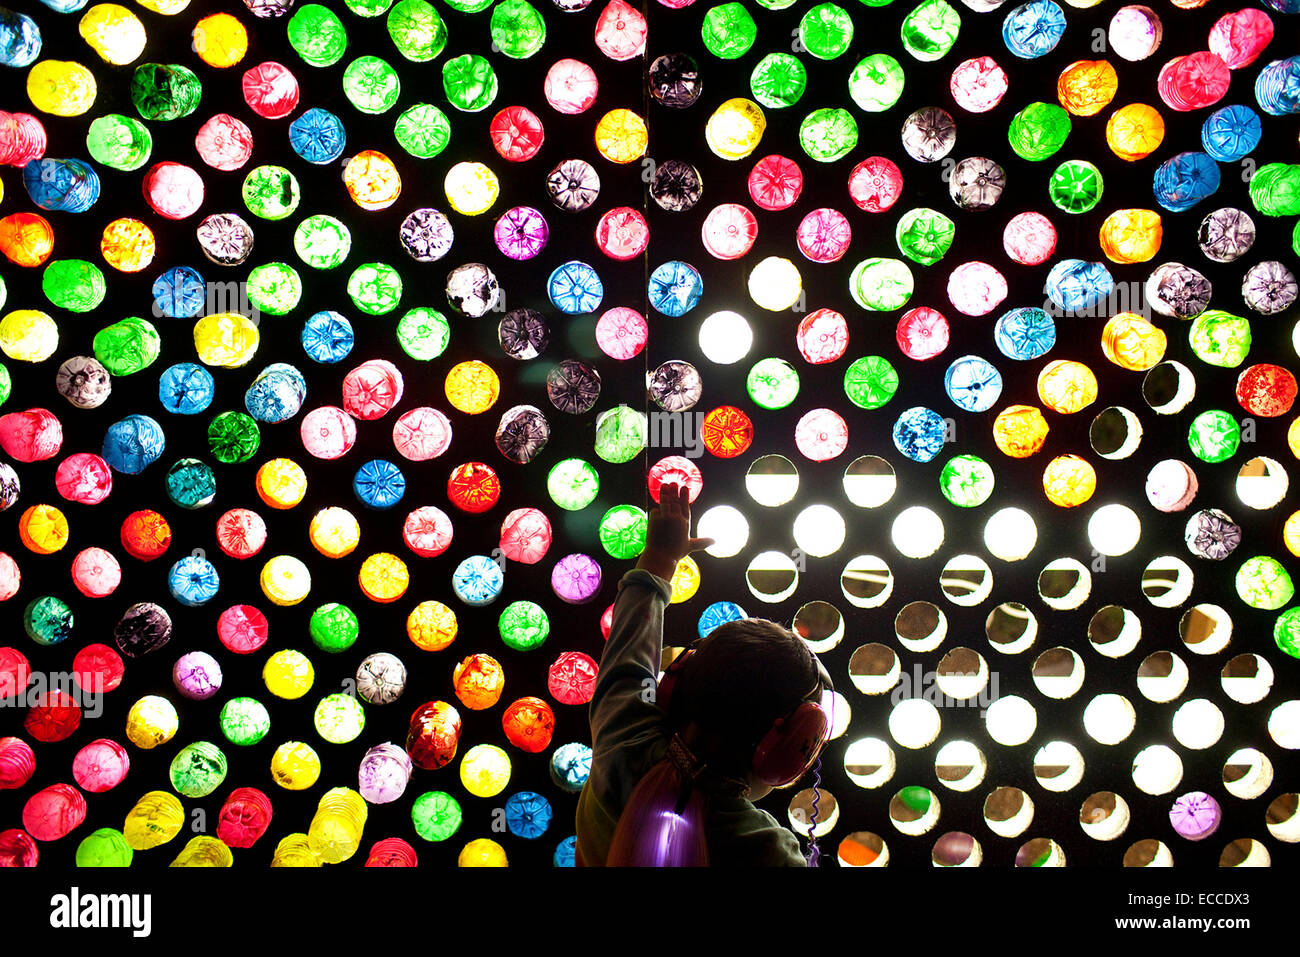 A child plays with an enormous Lite-Brite. - Stock Image